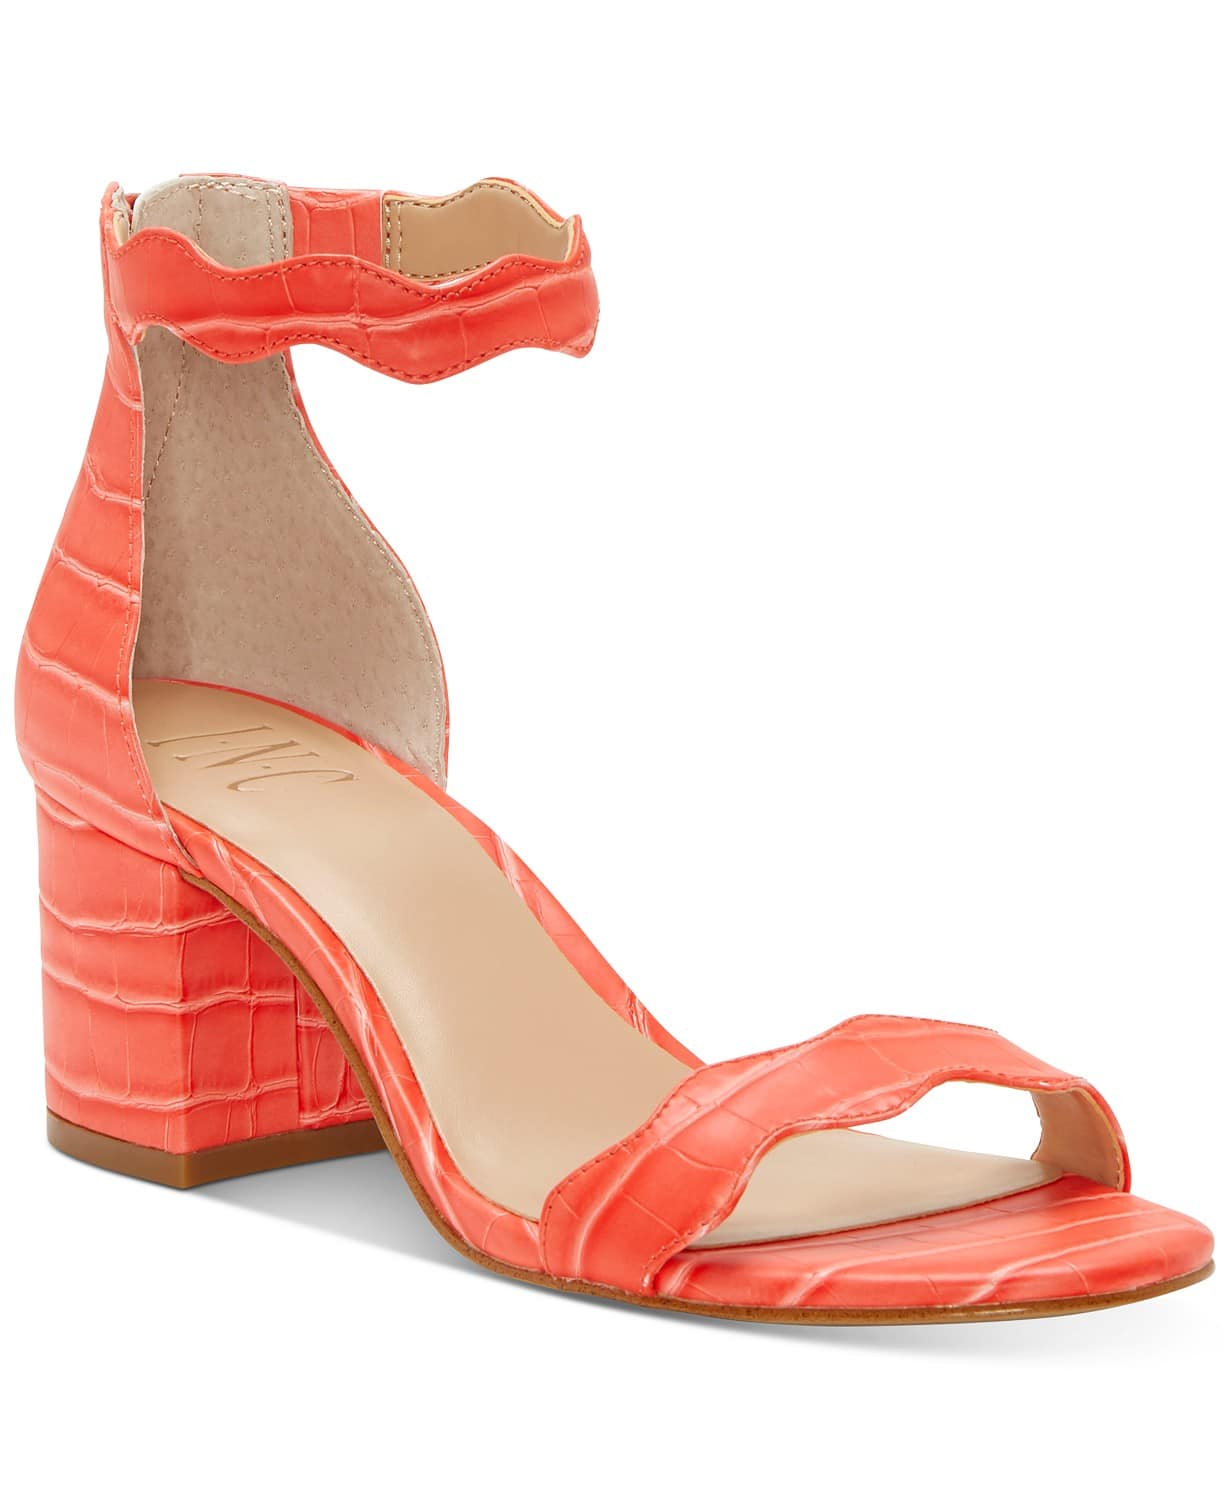 INC Women's Hadwin Scallop Two-Piece Sandals (coral croc, natural snake) $14.96 + Free Ship to Store for Pickup or F/S on $25+